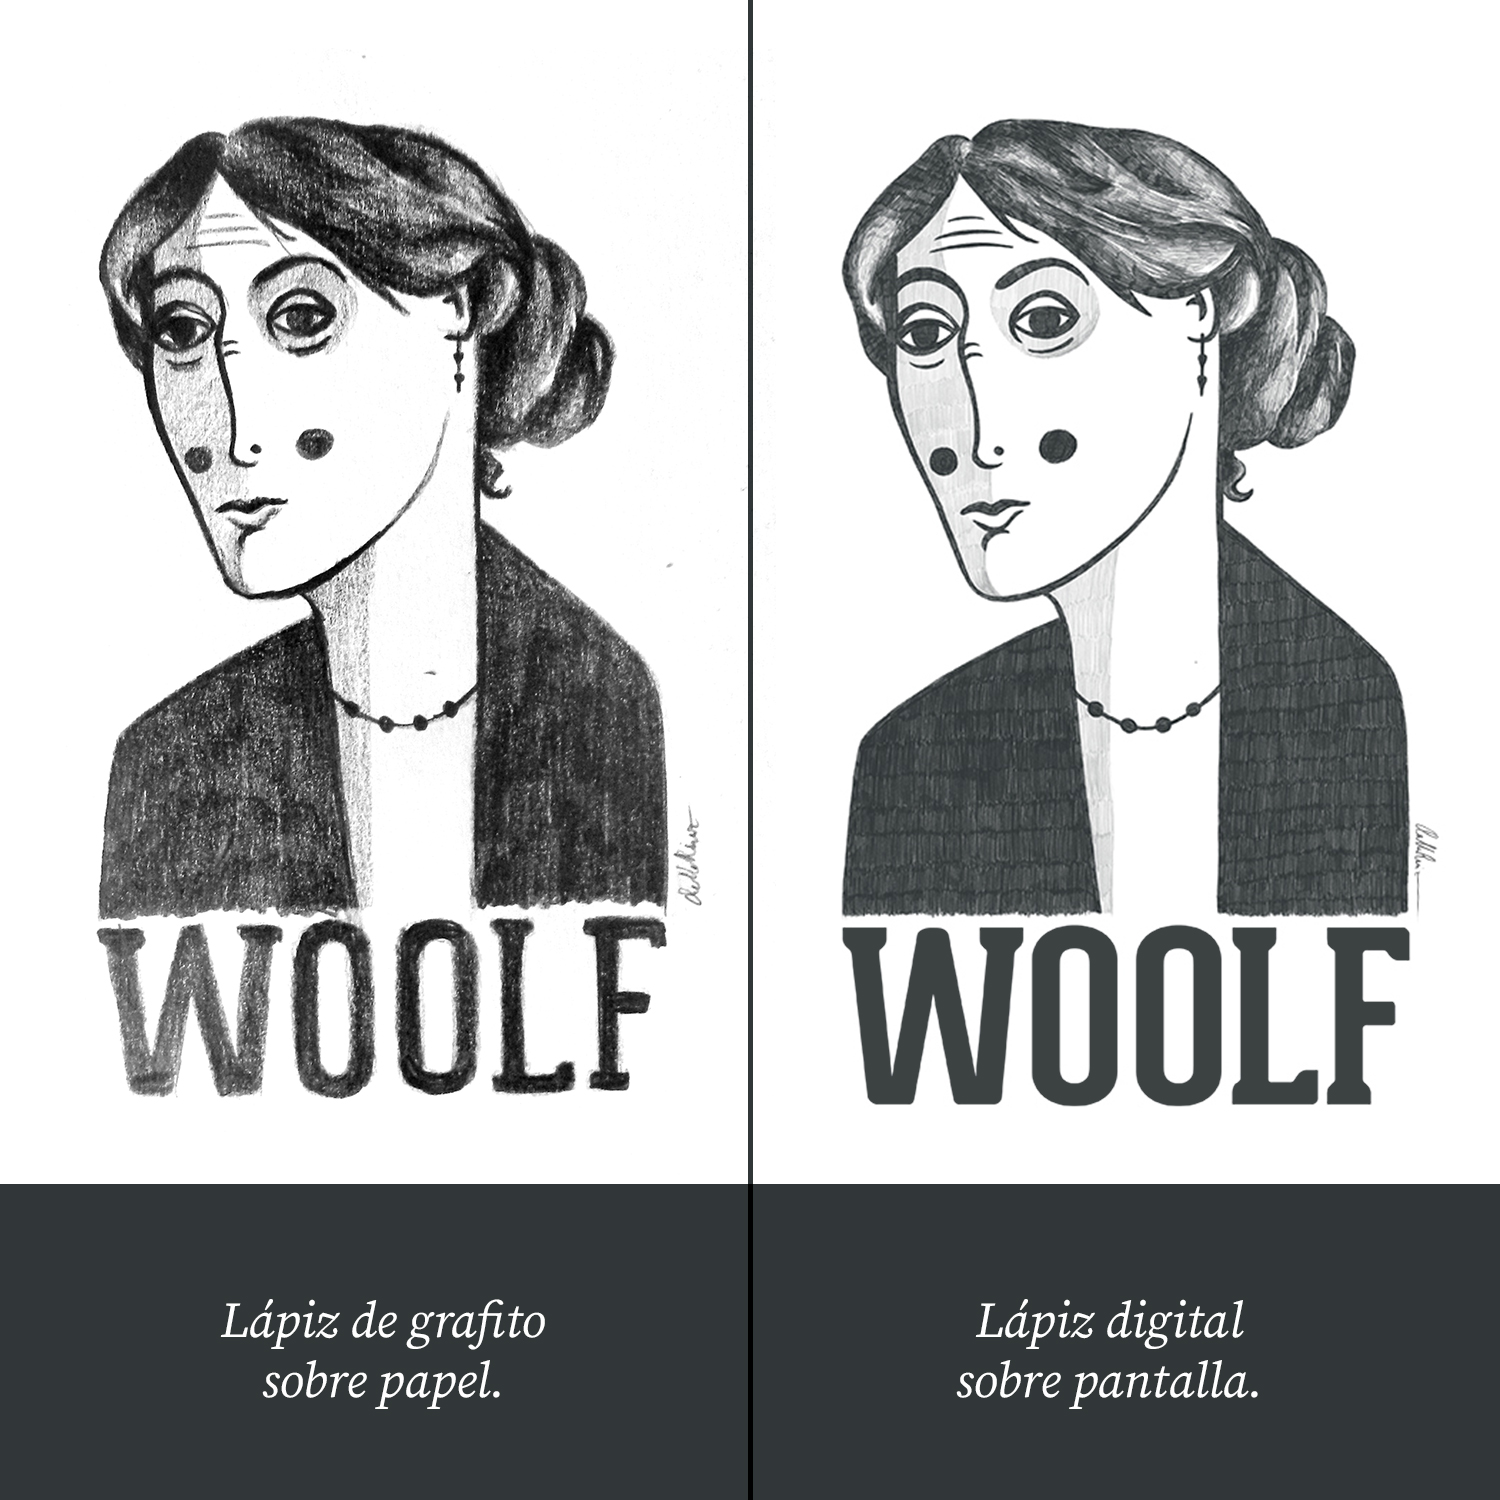 Dibujo de Virginia Woolf